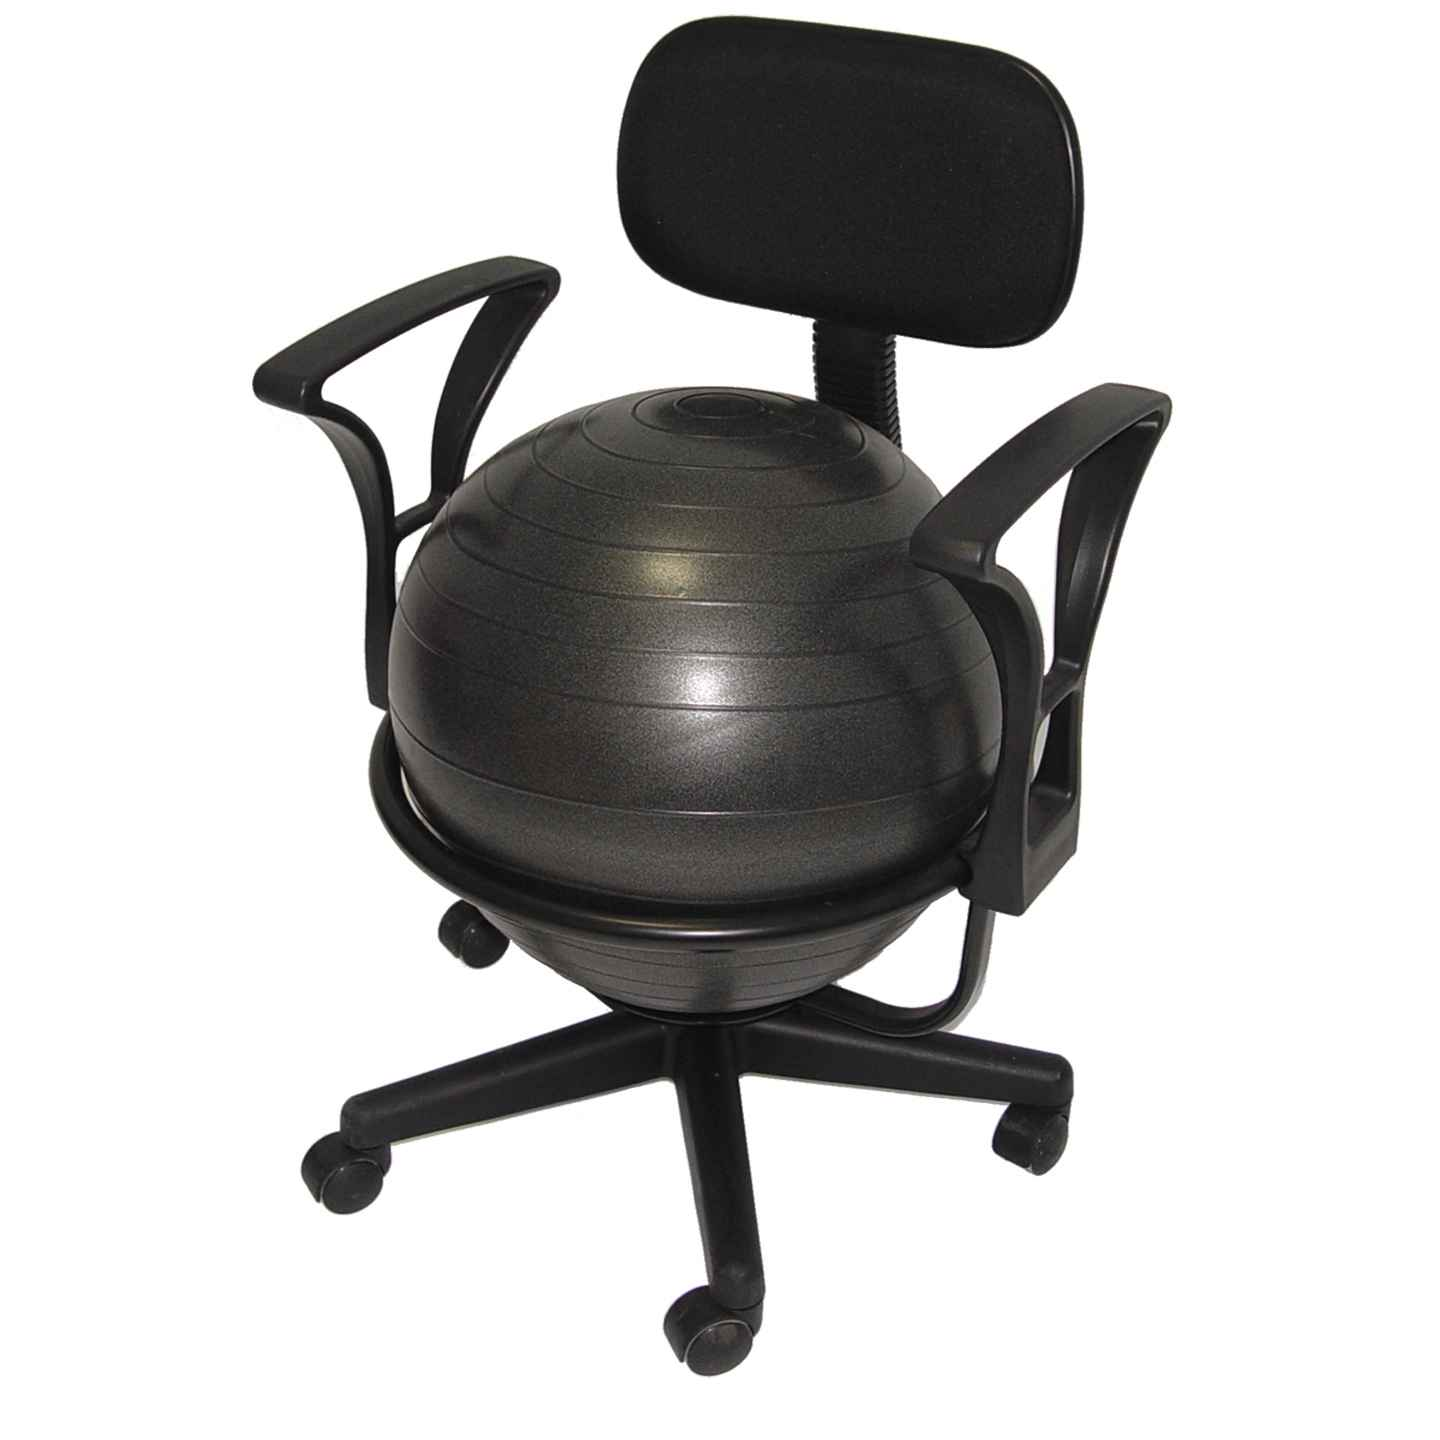 Ergo Ball Chair For Home fice